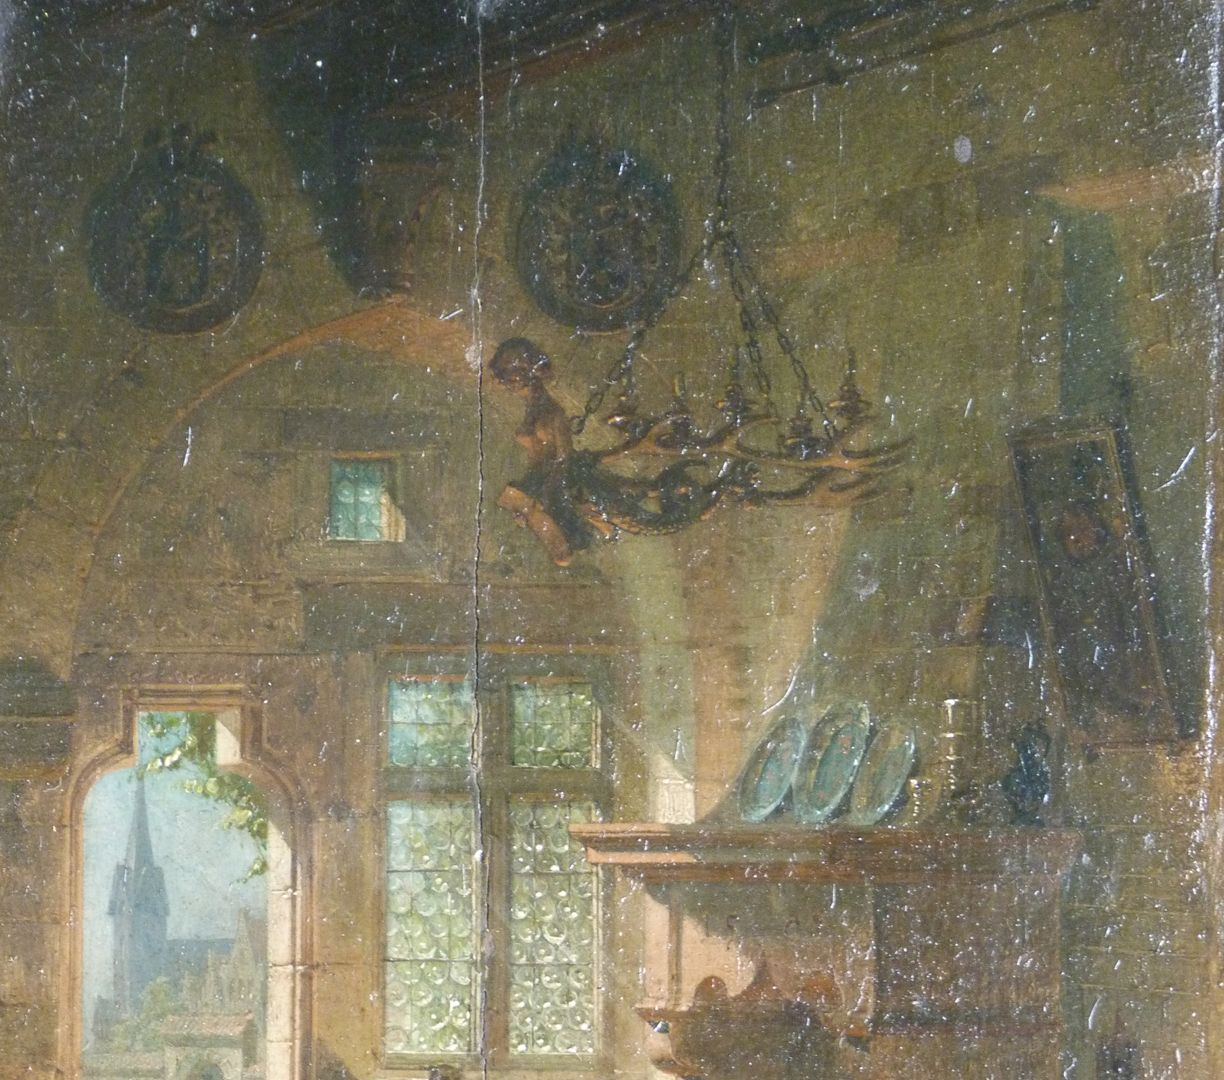 Fireplace room Upper part of the painting with funerary shields and female candelabra